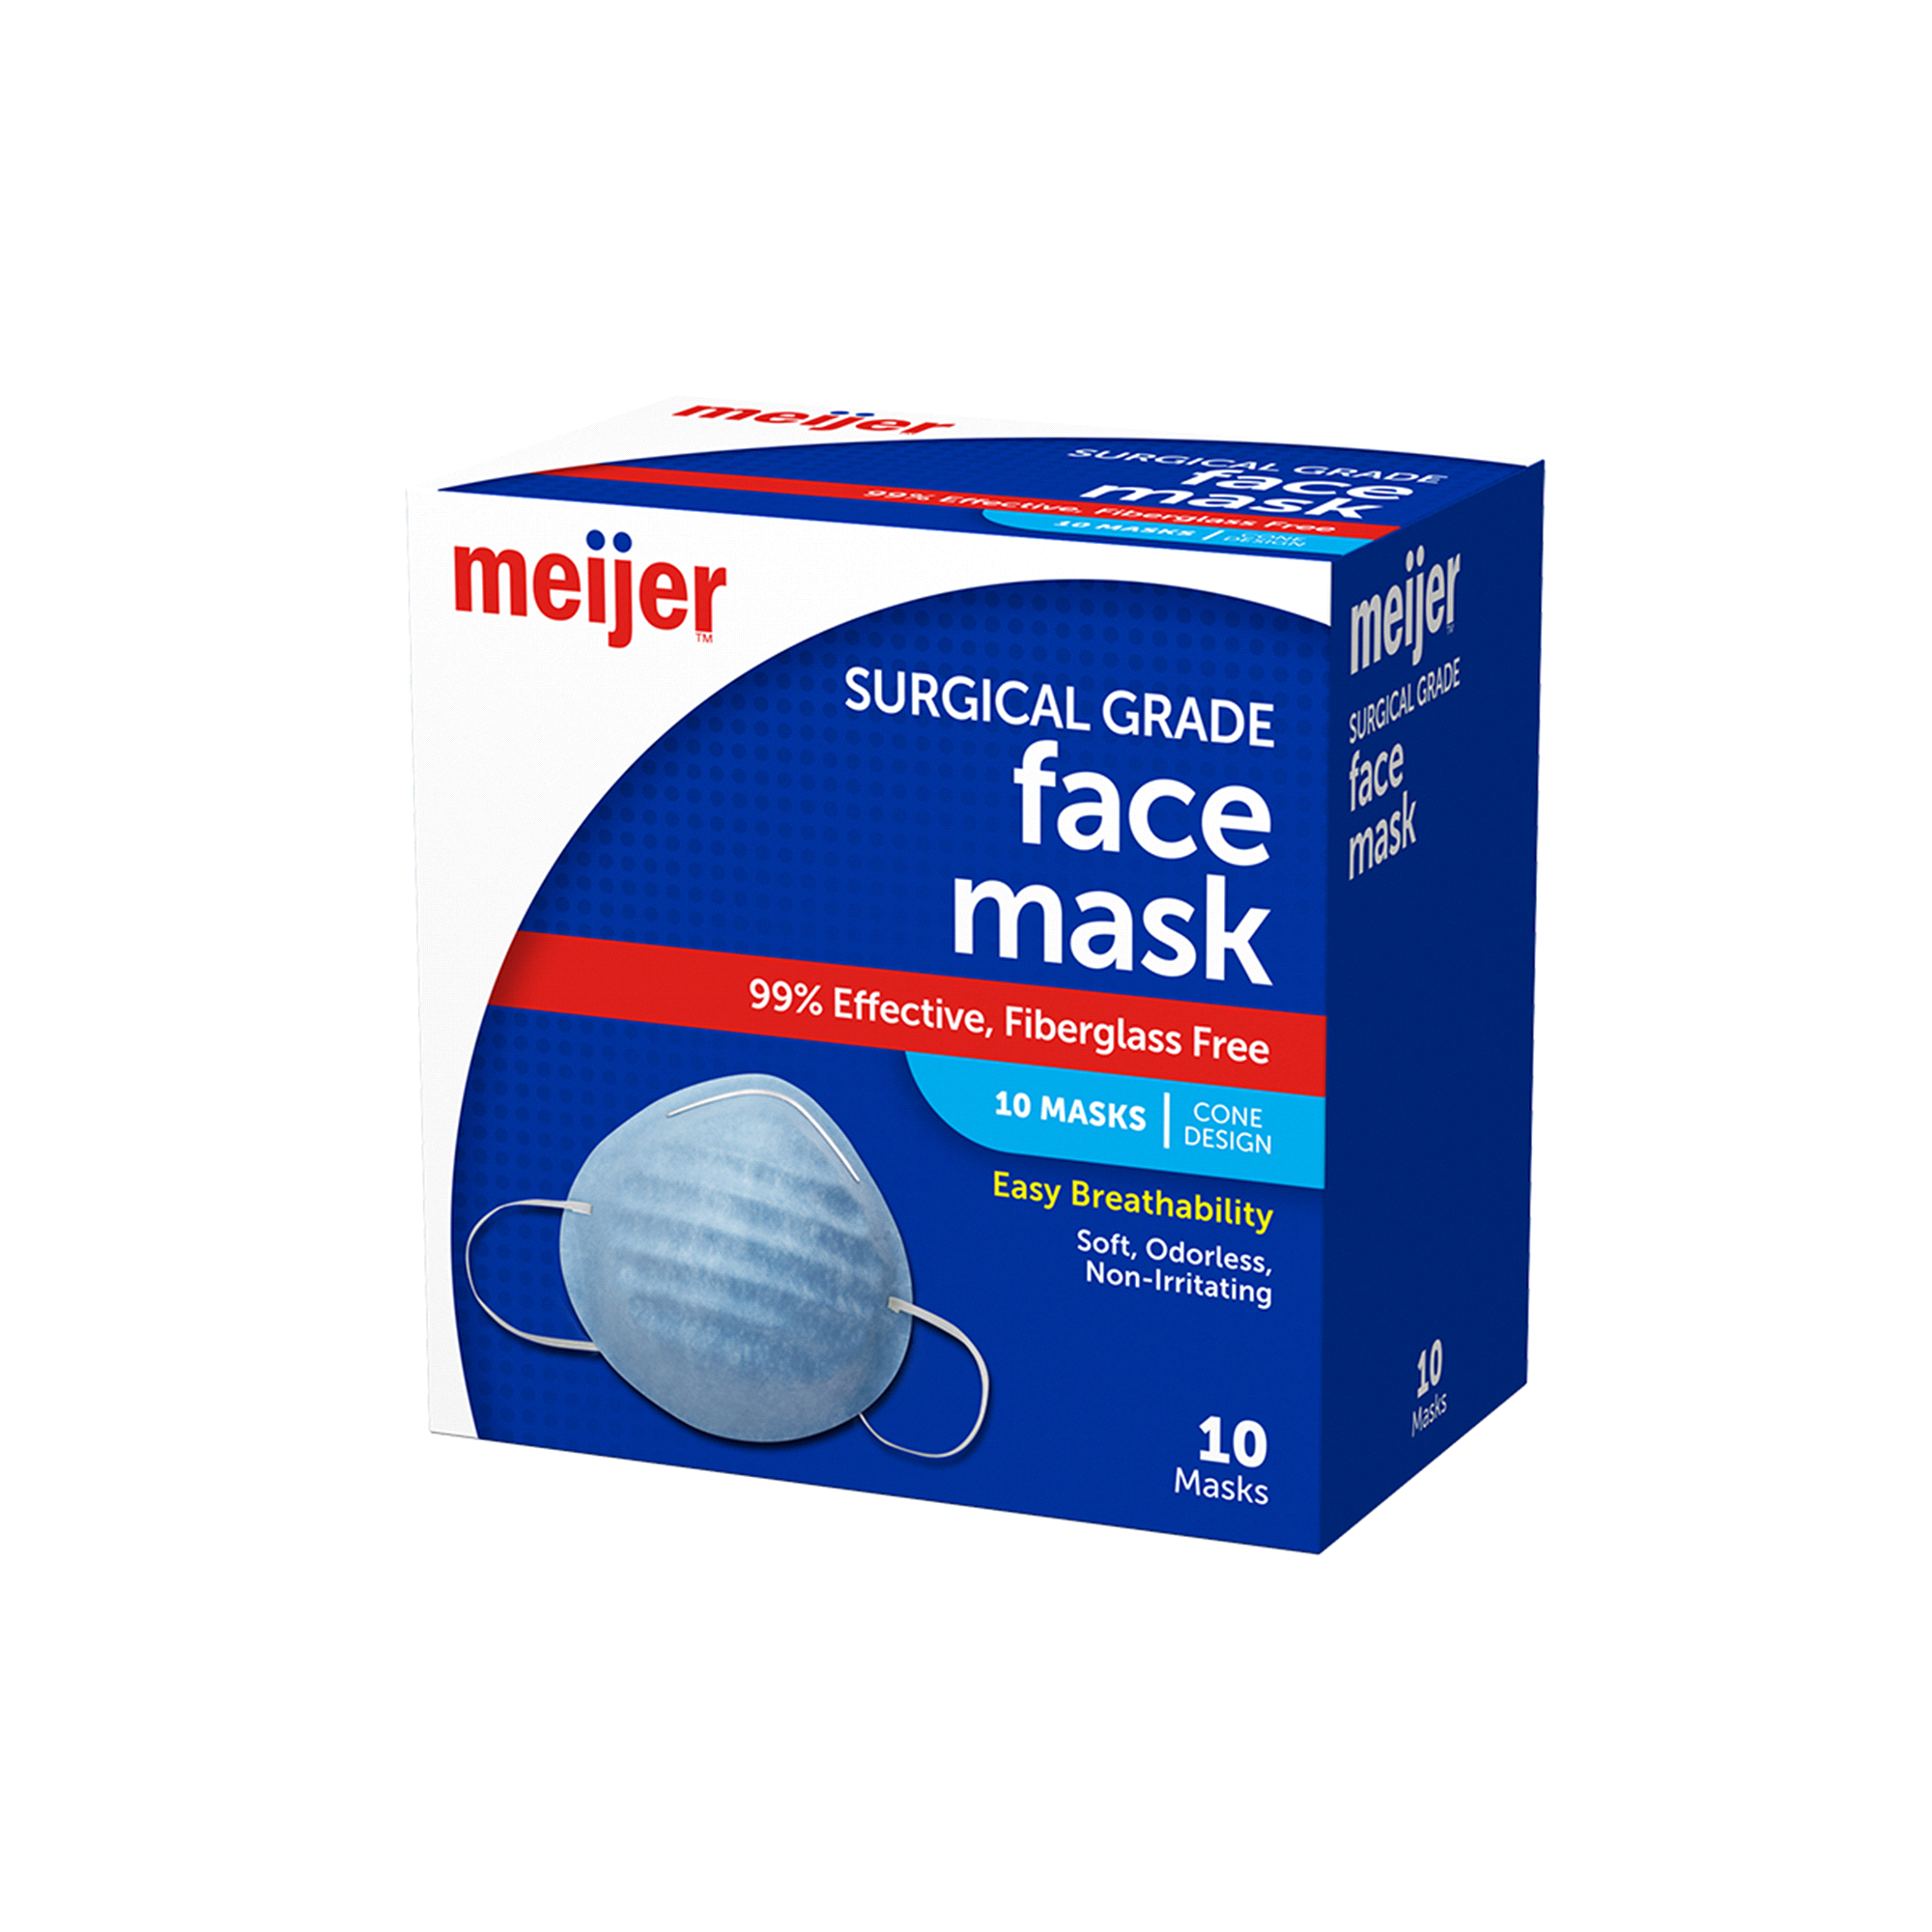 Meijer Surgical Cone Style Face Mask 10 Masks   Meijer.com